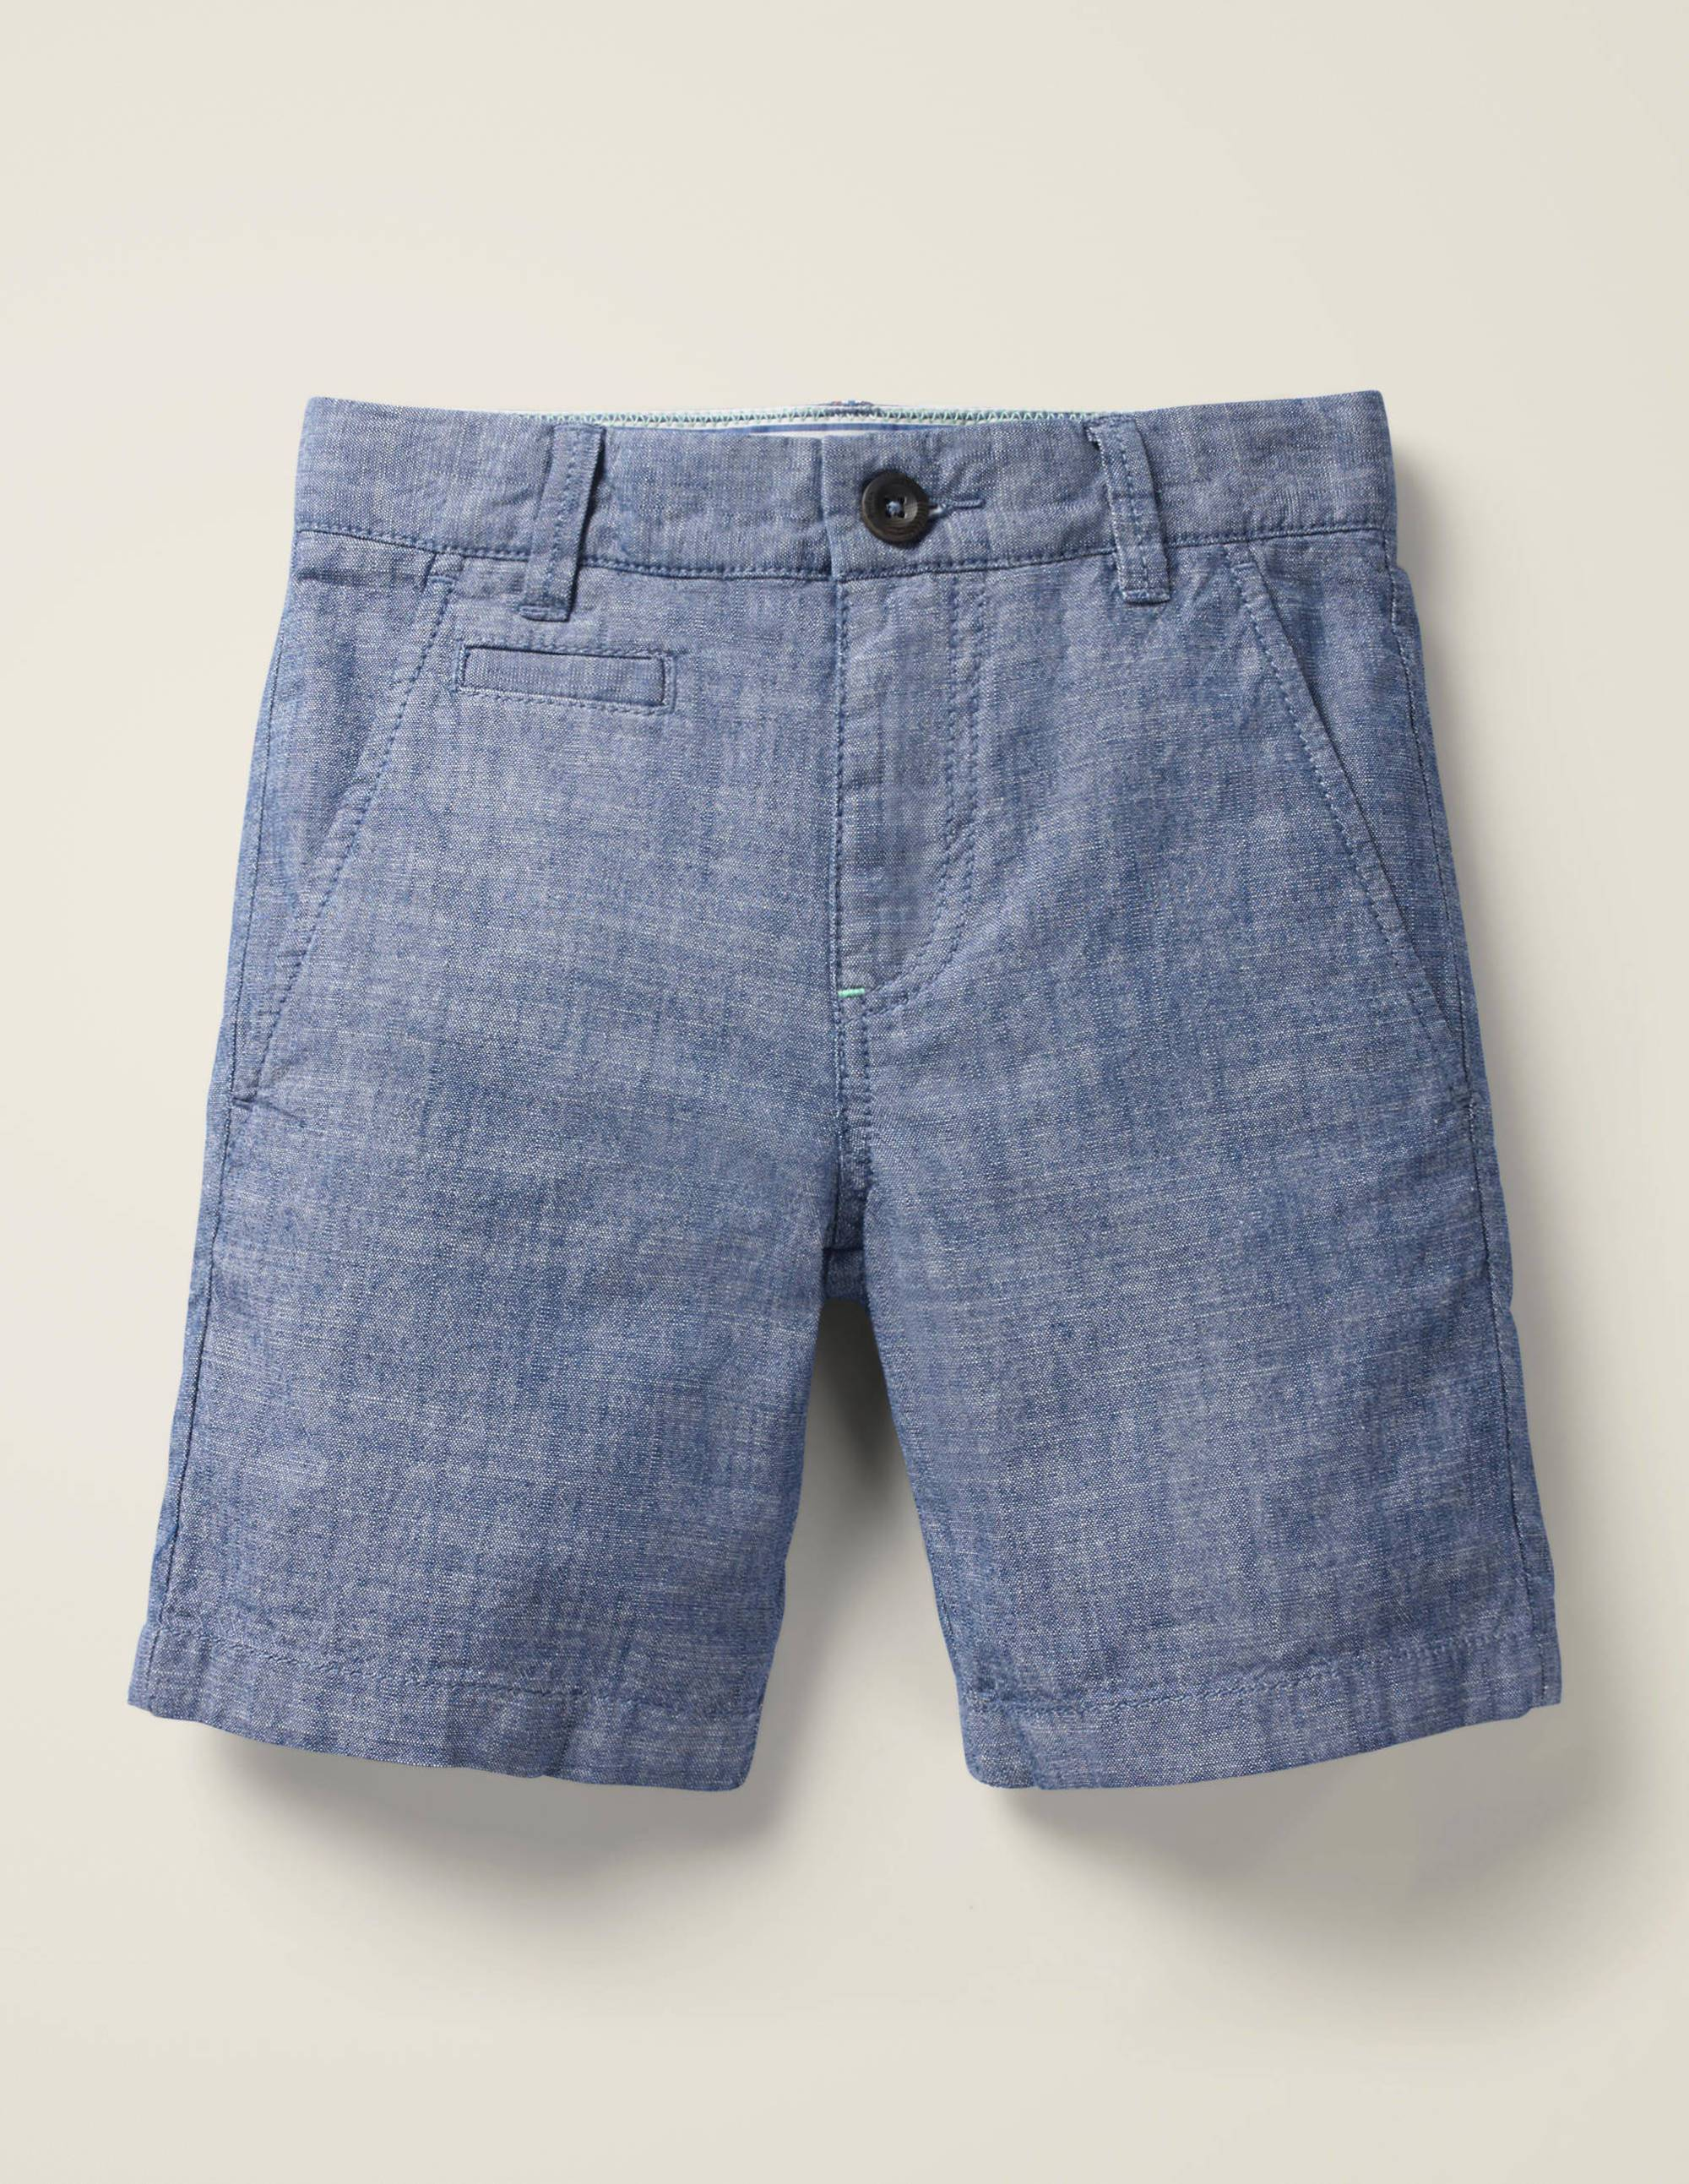 Mini Short chino MDN Femme Boden, Chambray - 4a